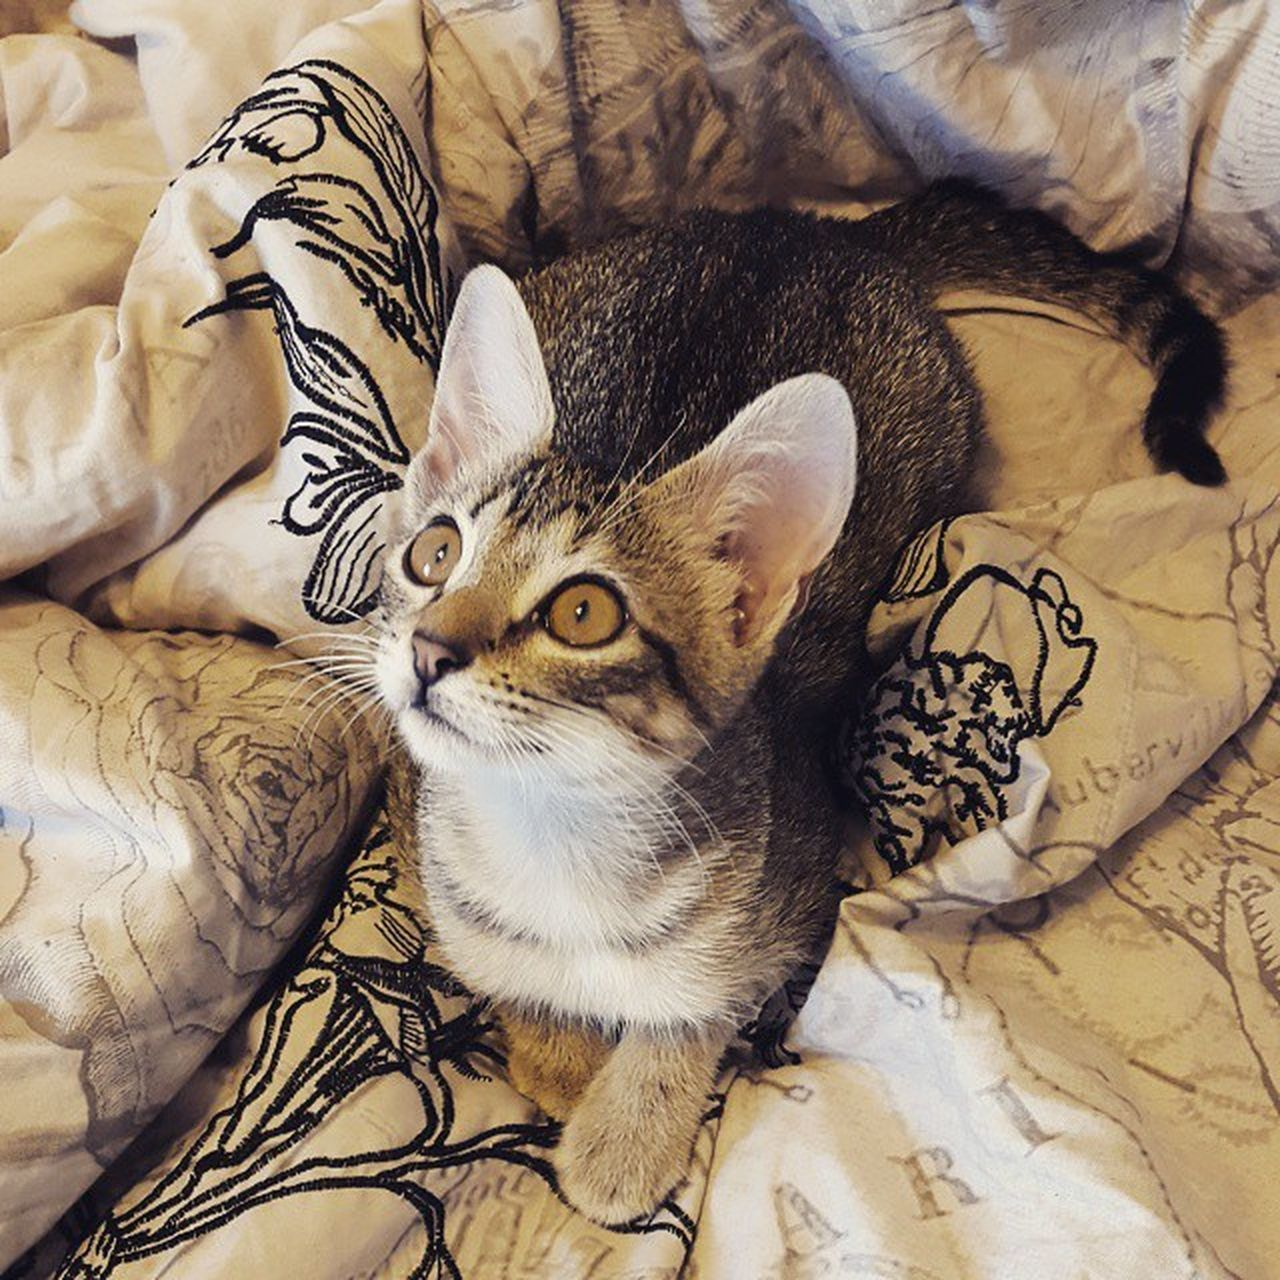 domestic cat, indoors, animal themes, feline, pets, sofa, bed, mammal, high angle view, domestic animals, home interior, relaxation, no people, comfortable, looking at camera, one animal, sheet, portrait, day, kitten, close-up